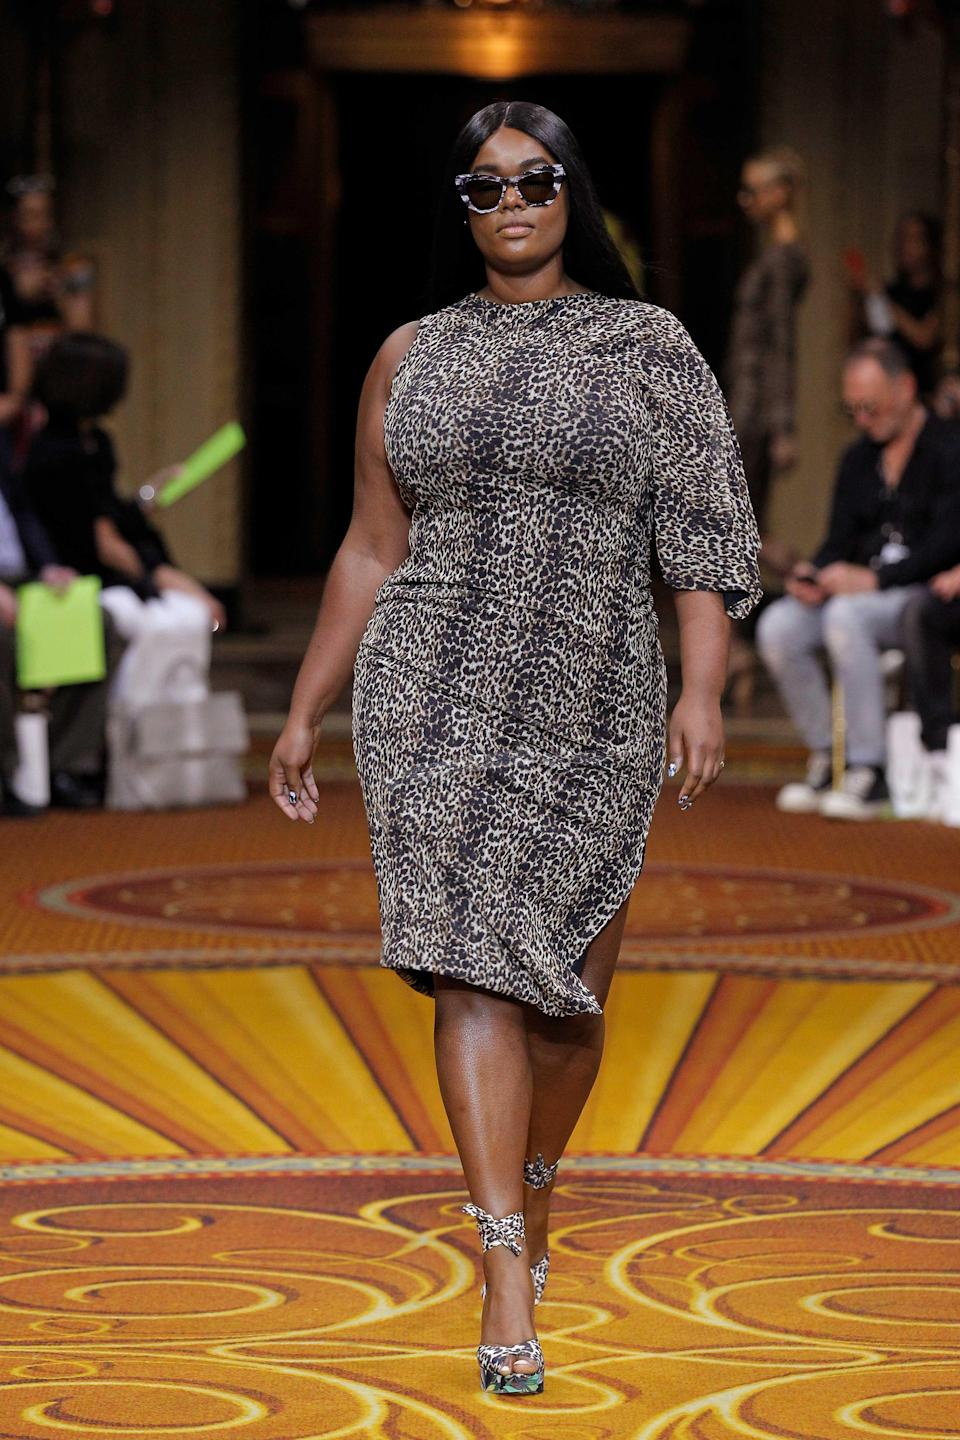 <p>A plus-size model walks Christian Siriano's runway wearing a leopard print dress, matching heels, and cat-eye sunglasses during New York Fashion Week. (Photo: Getty Images) </p>